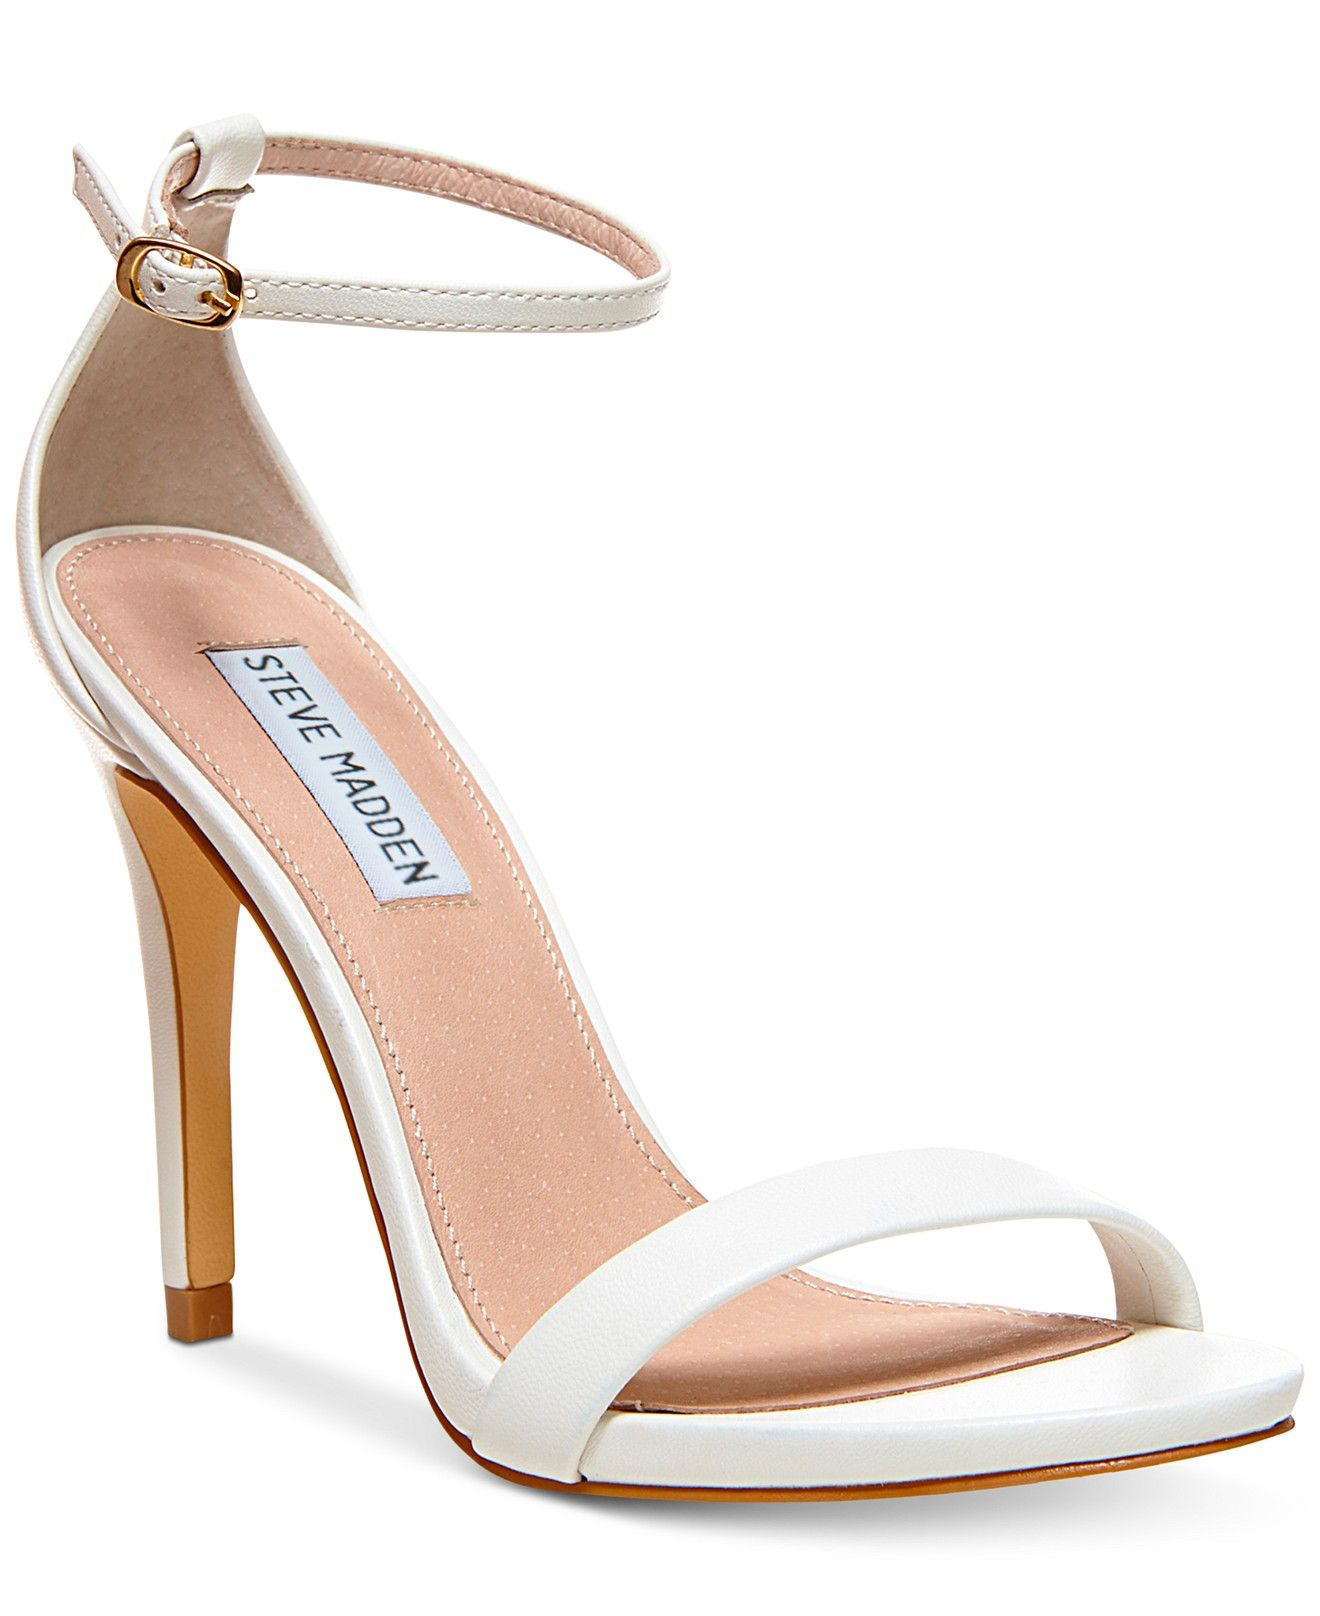 86f24ee515b Steve Madden Women s Stecy Two-Piece Sandals - Pumps - Shoes - Macy s